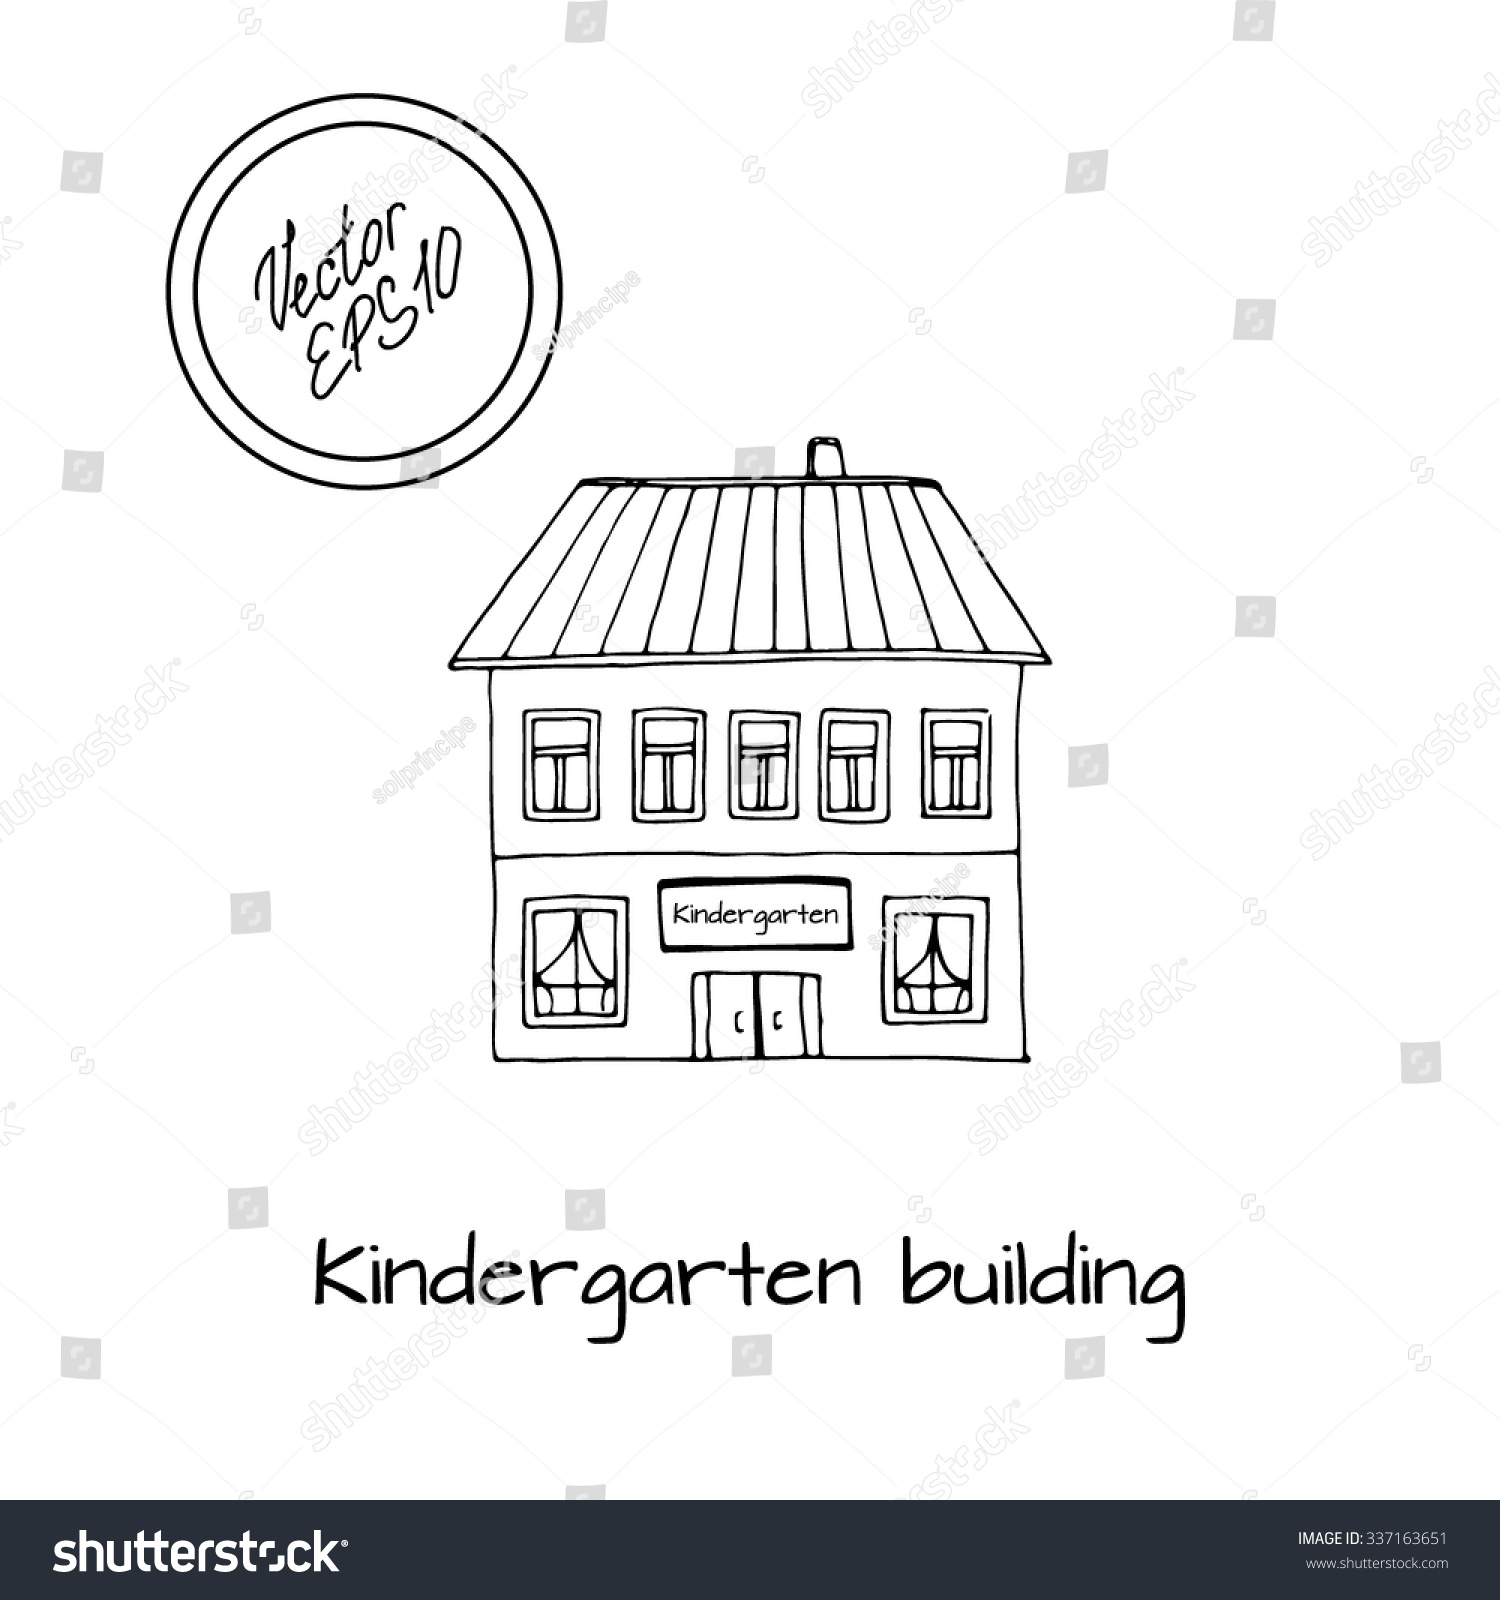 Hand drawn sketch of detached house with kindergarten and big windows and roof black and